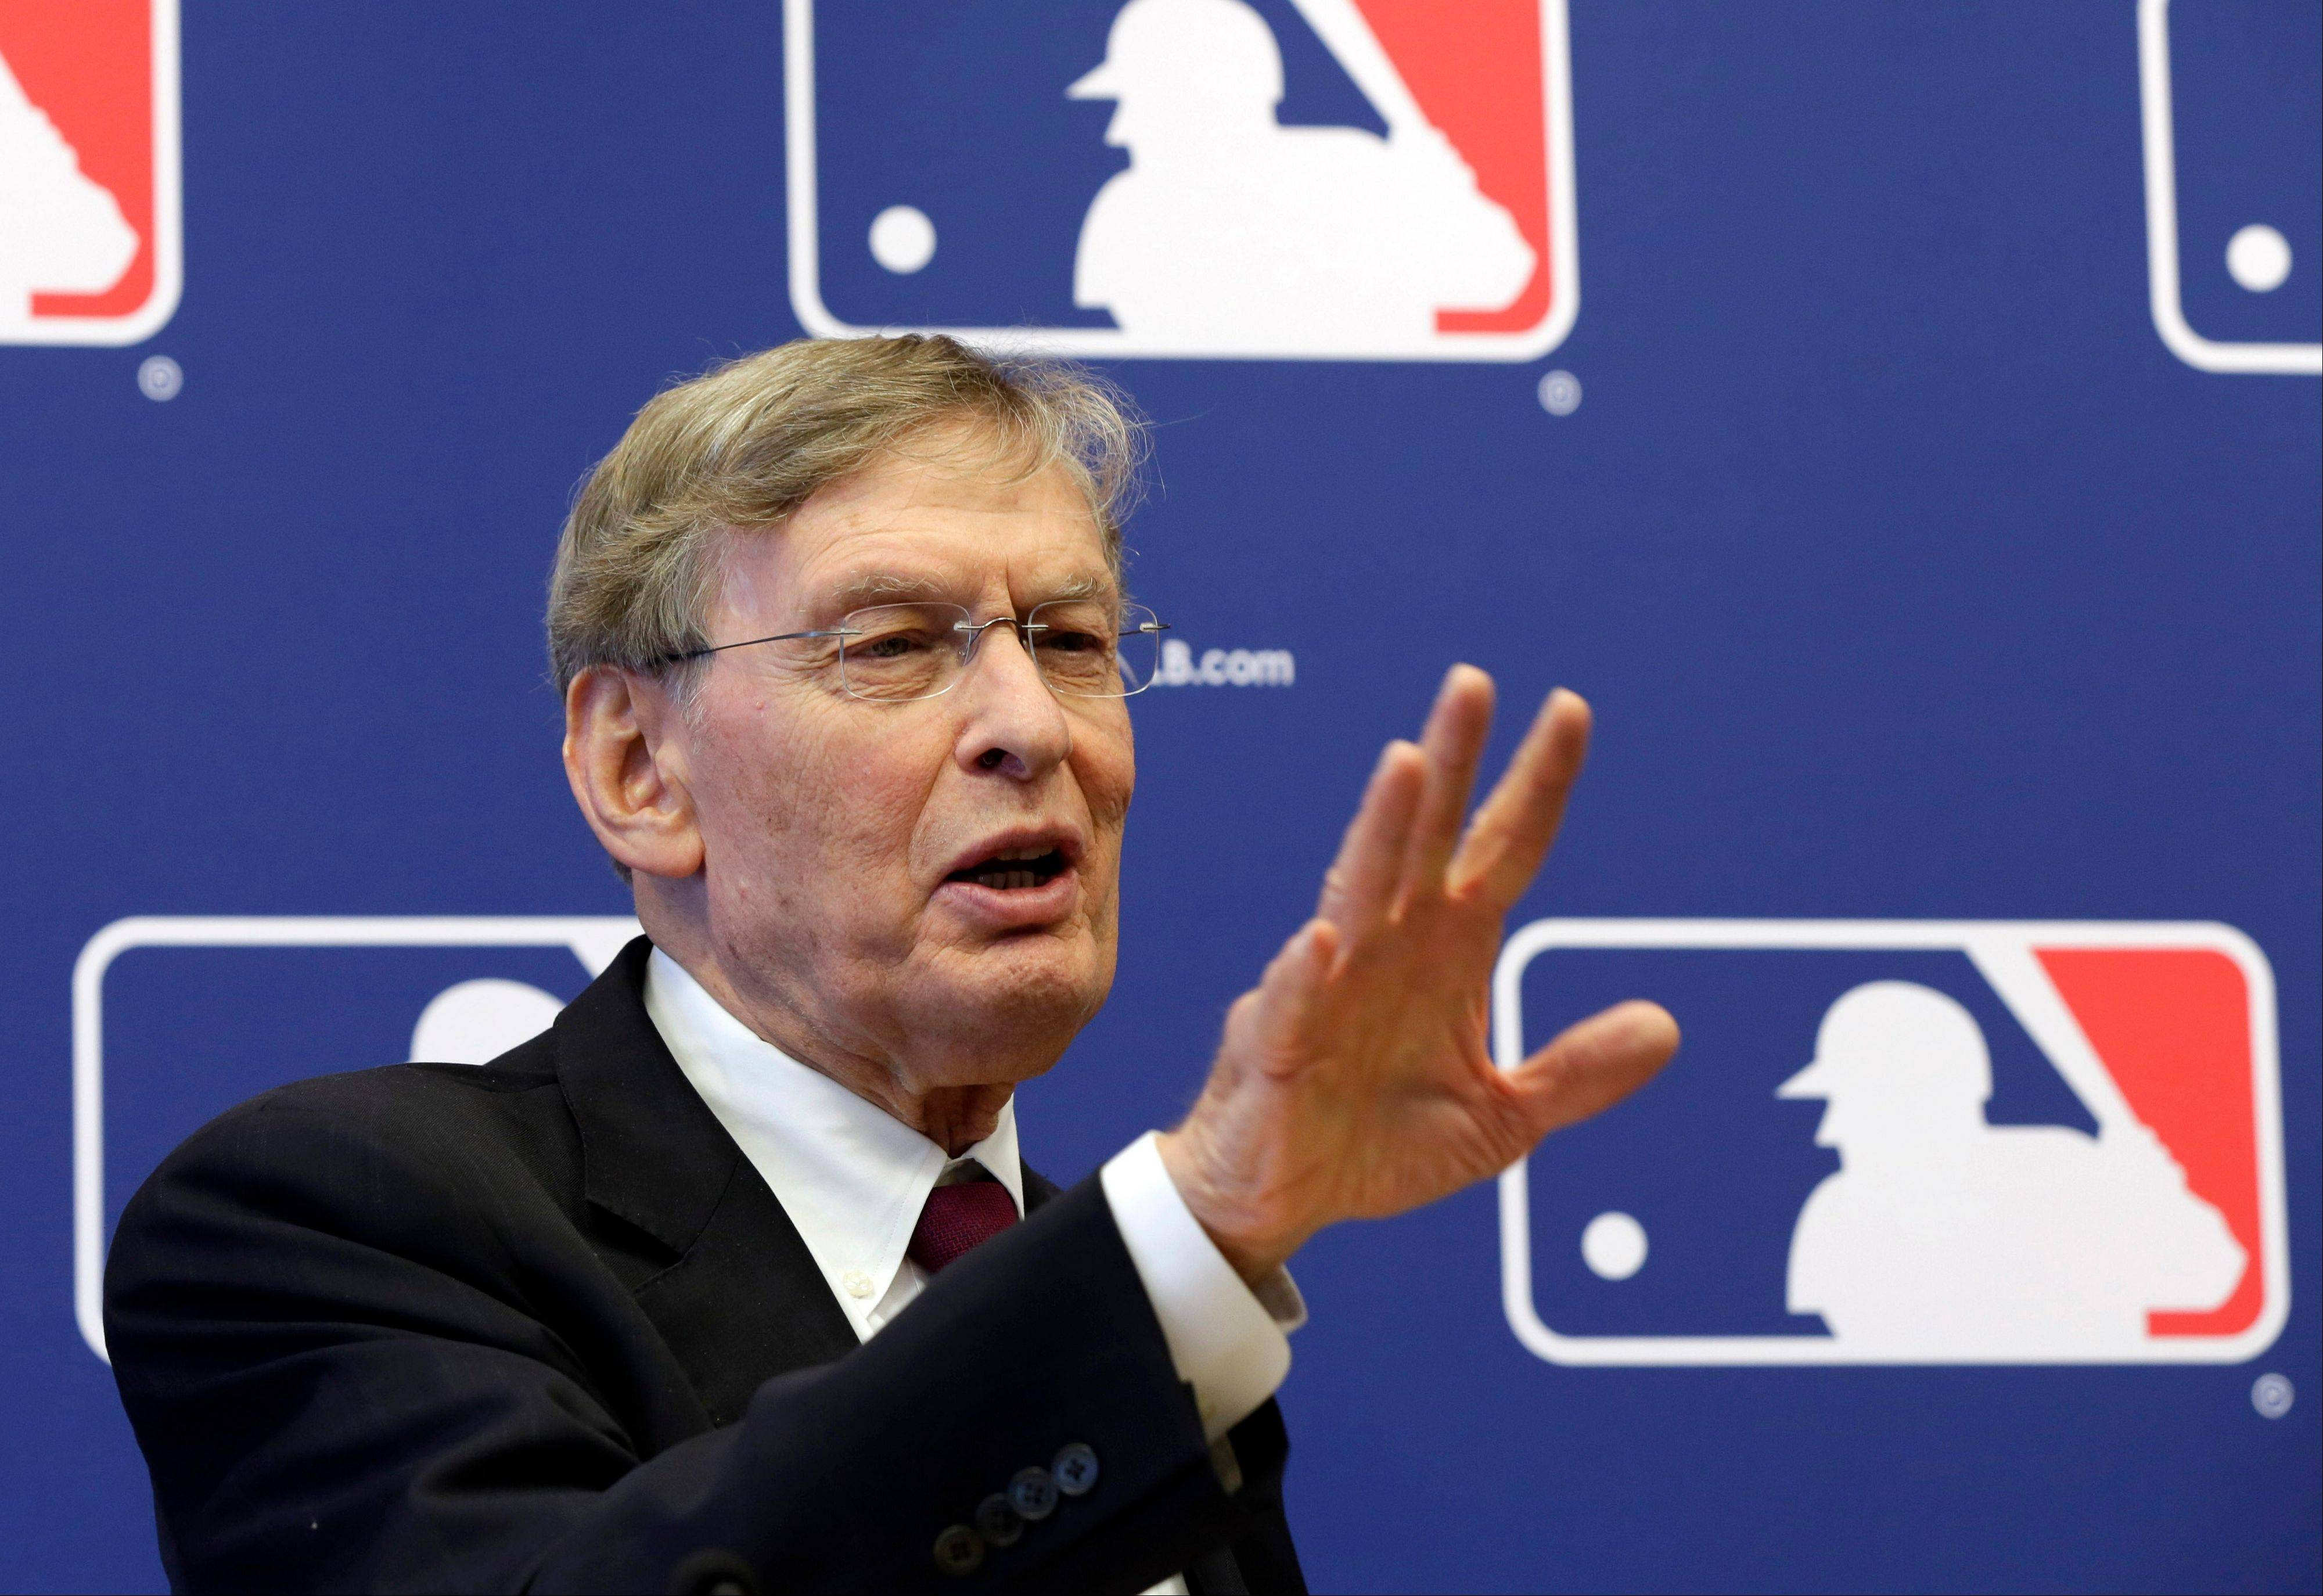 In this May 16, 2013, photo, baseball Commissioner Bud Selig answers a question during a news conference at Major League Baseball headquarters in New York. Alex Rodriguez has accepted his season-long suspension from Major League Baseball, the longest penalty in the sport's history related to performance-enhancing drugs. Rodriguez withdrew his lawsuits against Major League Baseball, Selig and the players' association to overturn his season-long suspension on Friday, Feb. 7, 2014. The notices of dismissal were filed in federal court in Manhattan.